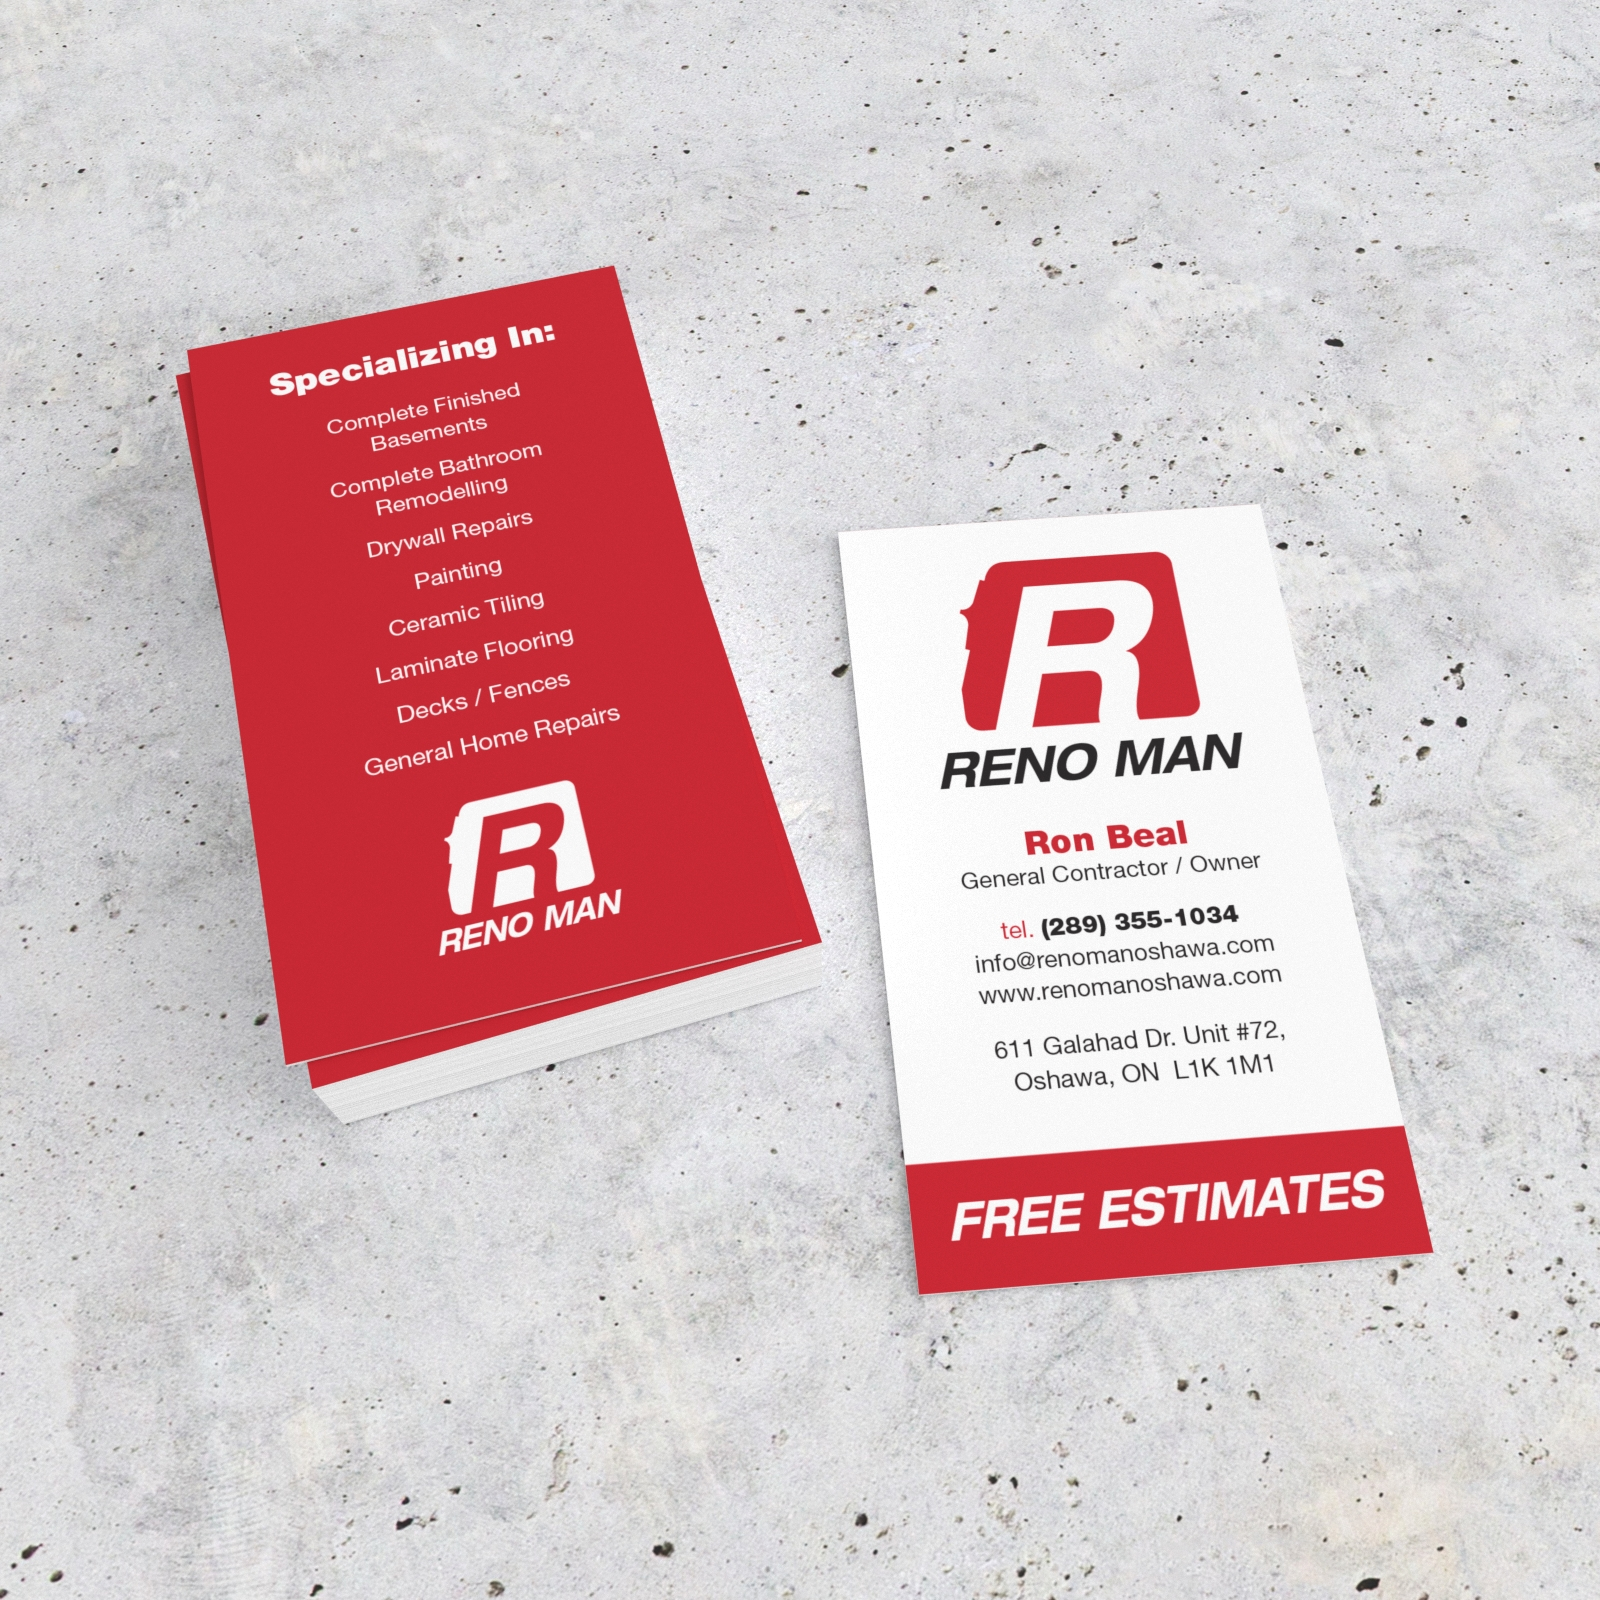 Reno Man Logo and Business Cards